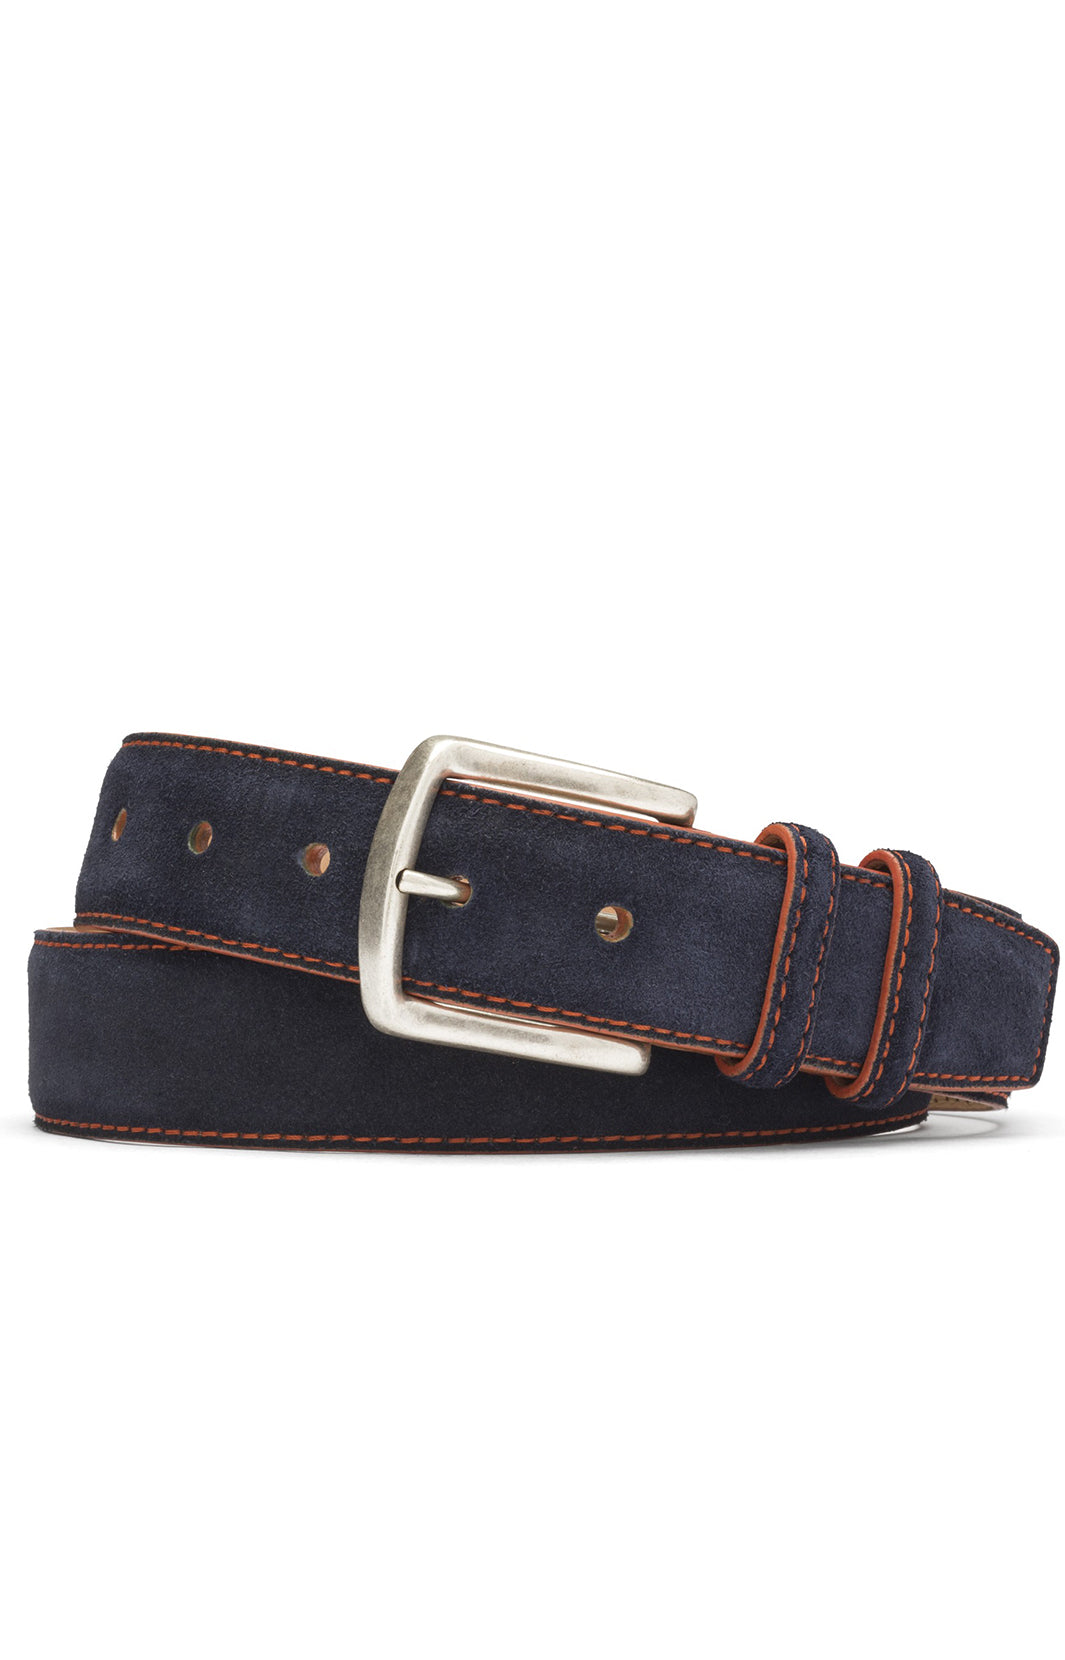 "1 3/8"" SUEDE CALF BELT - BLACK WITH RED STITCHING"